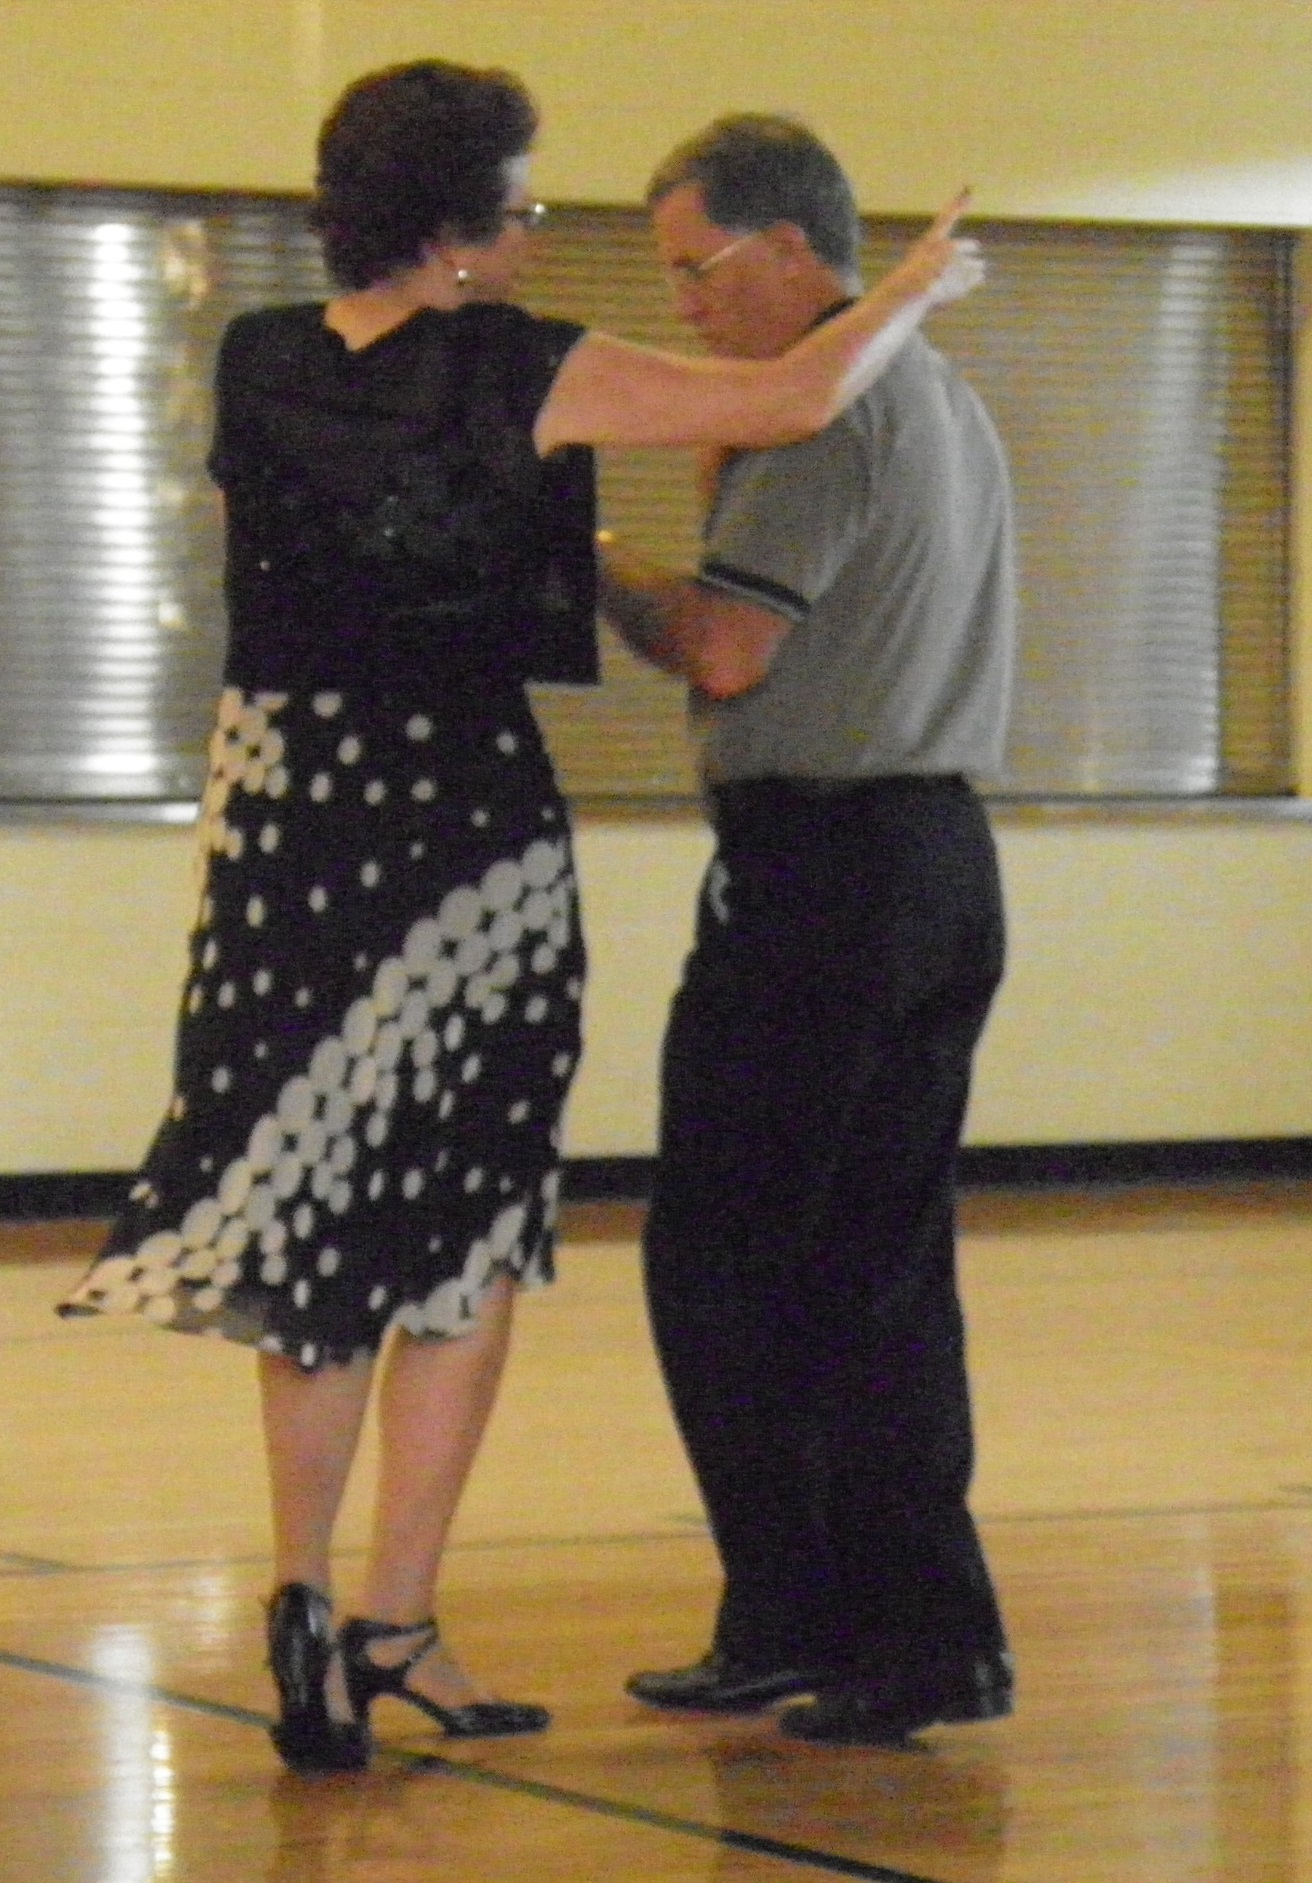 Doug and Marge Deline dancing the night away